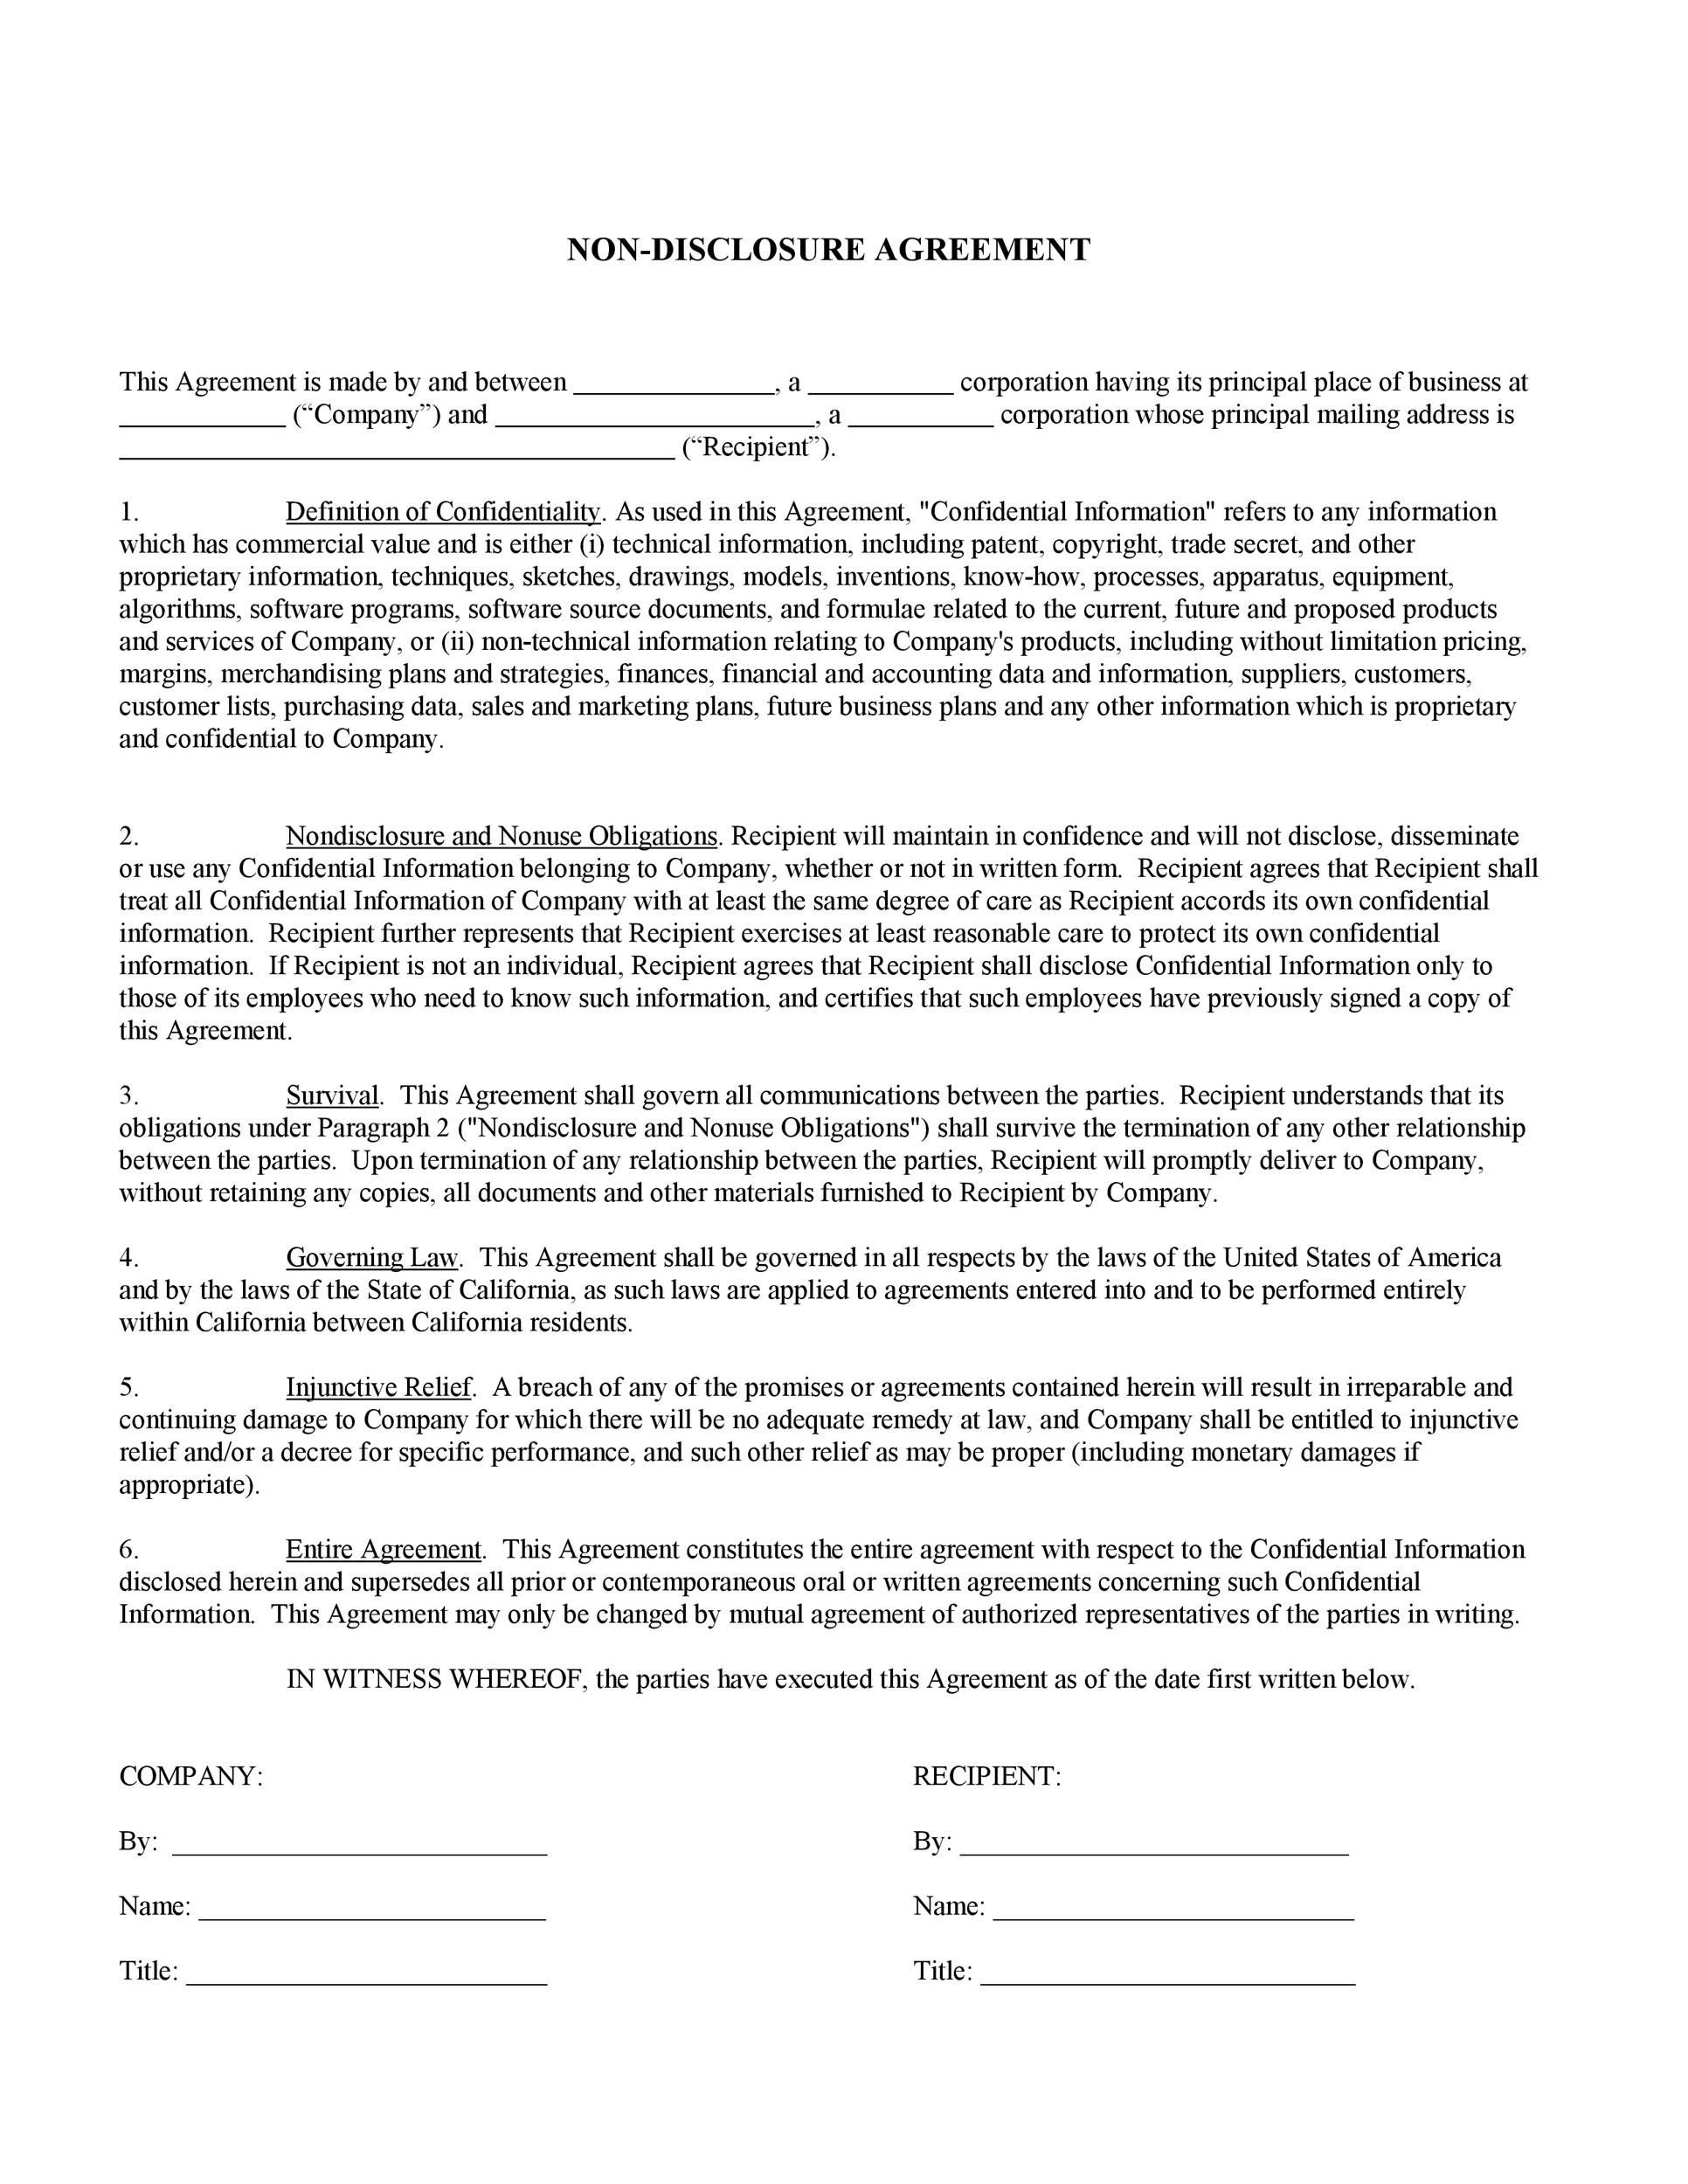 40 Non Disclosure Agreement Templates, Samples  Forms ᐅ Template Lab